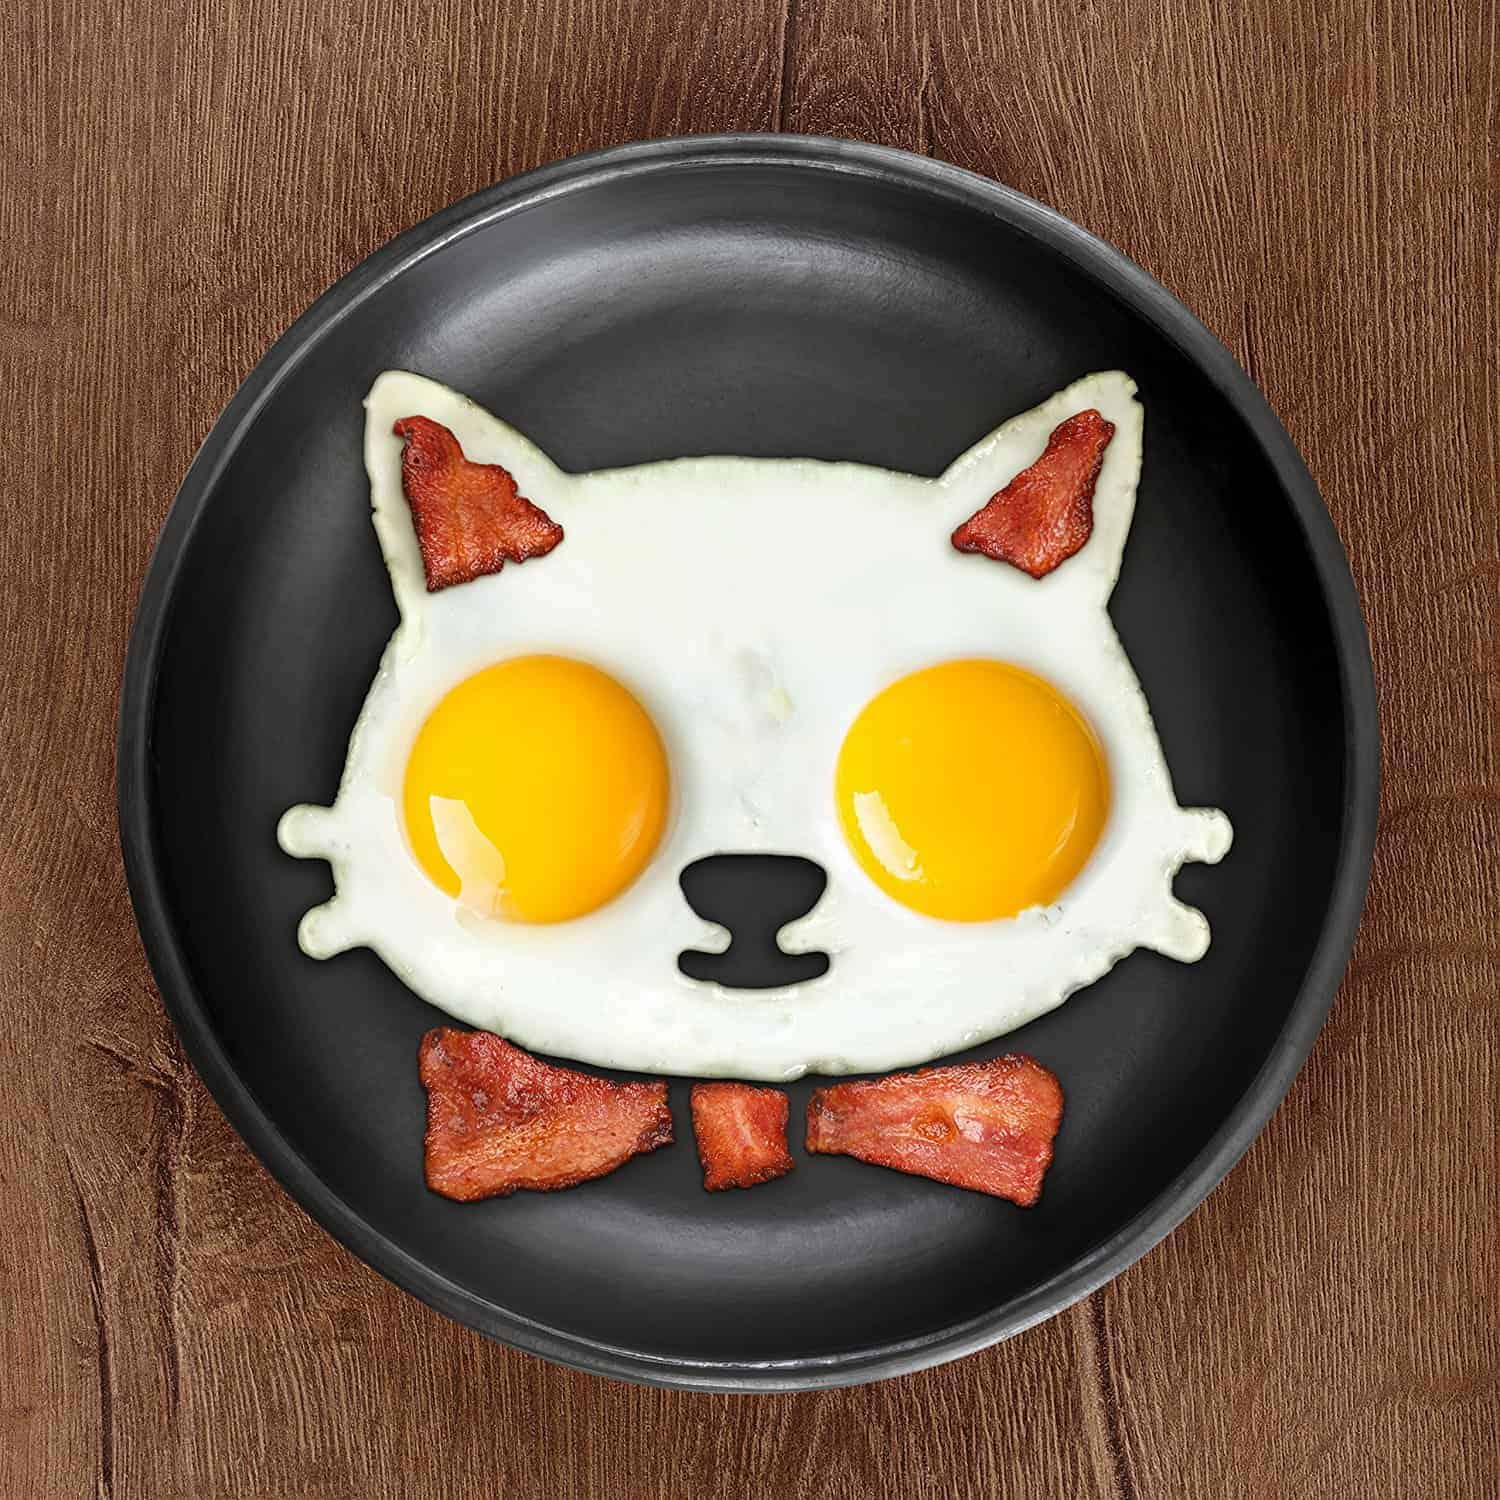 13 Most Creative Egg Molds For Fried And Boiled Eggs To Make Breakfast More Fun